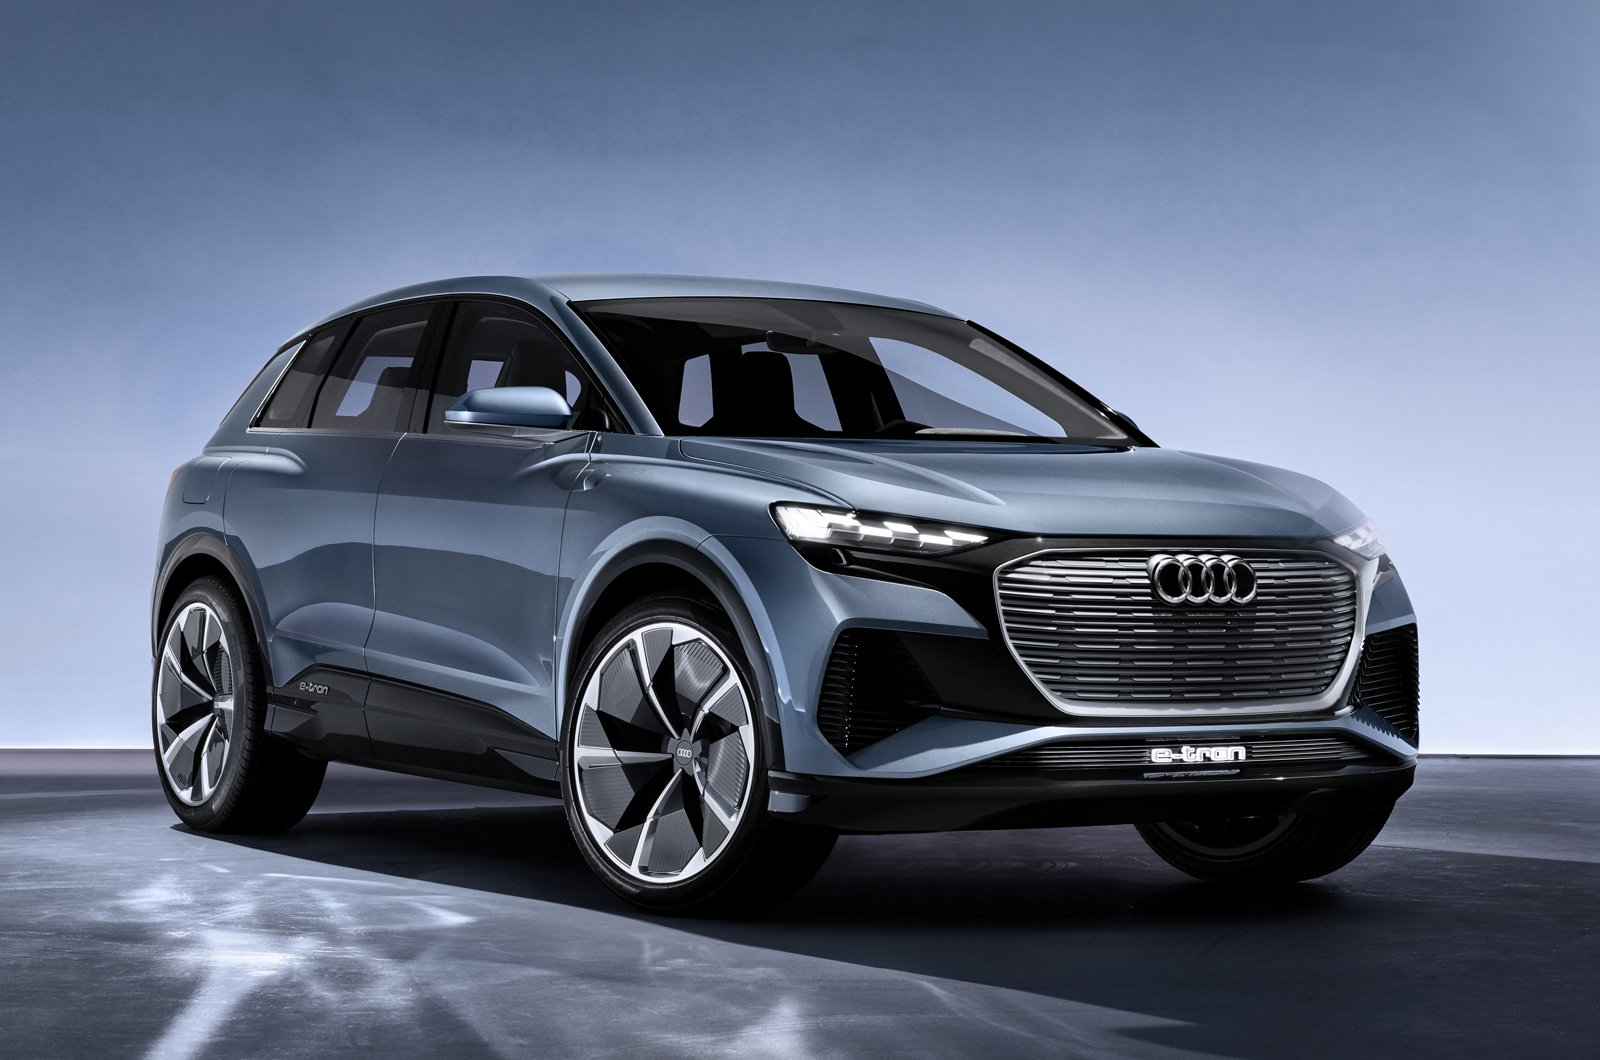 2020 Audi Q4 E Tron Electric Suv Revealed Price Specs And Release